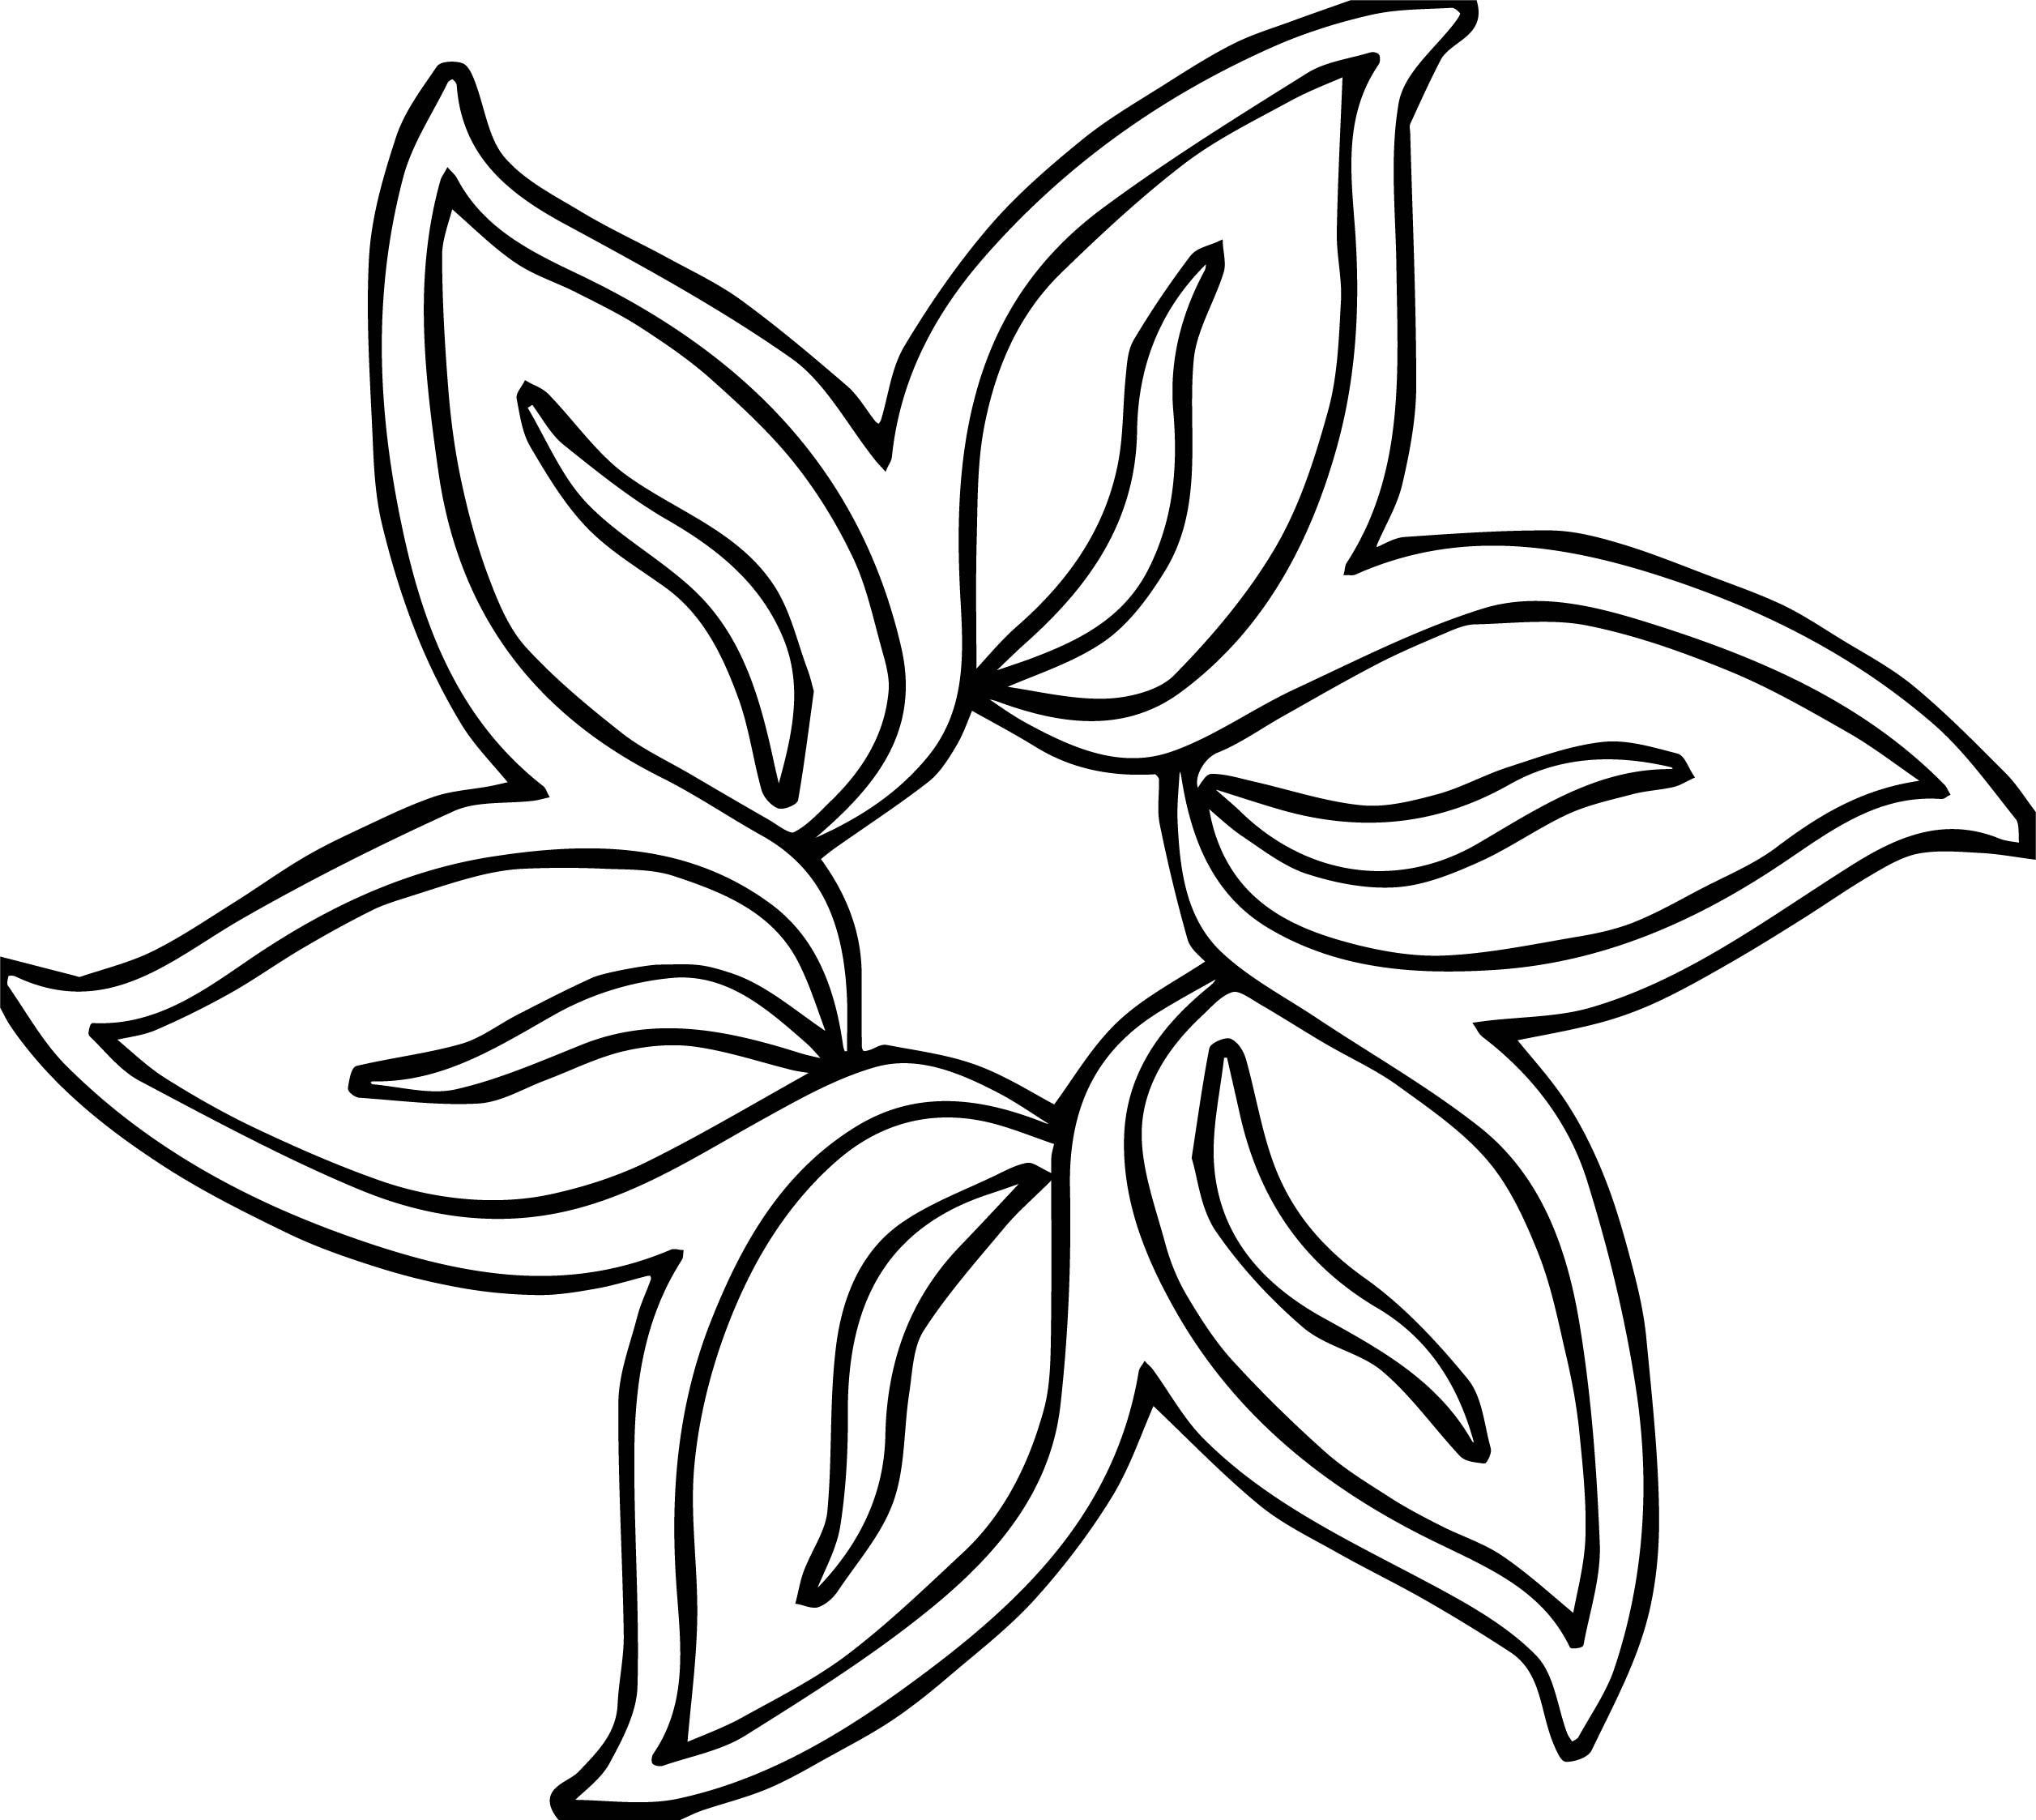 coloring pages of lavender - photo#35